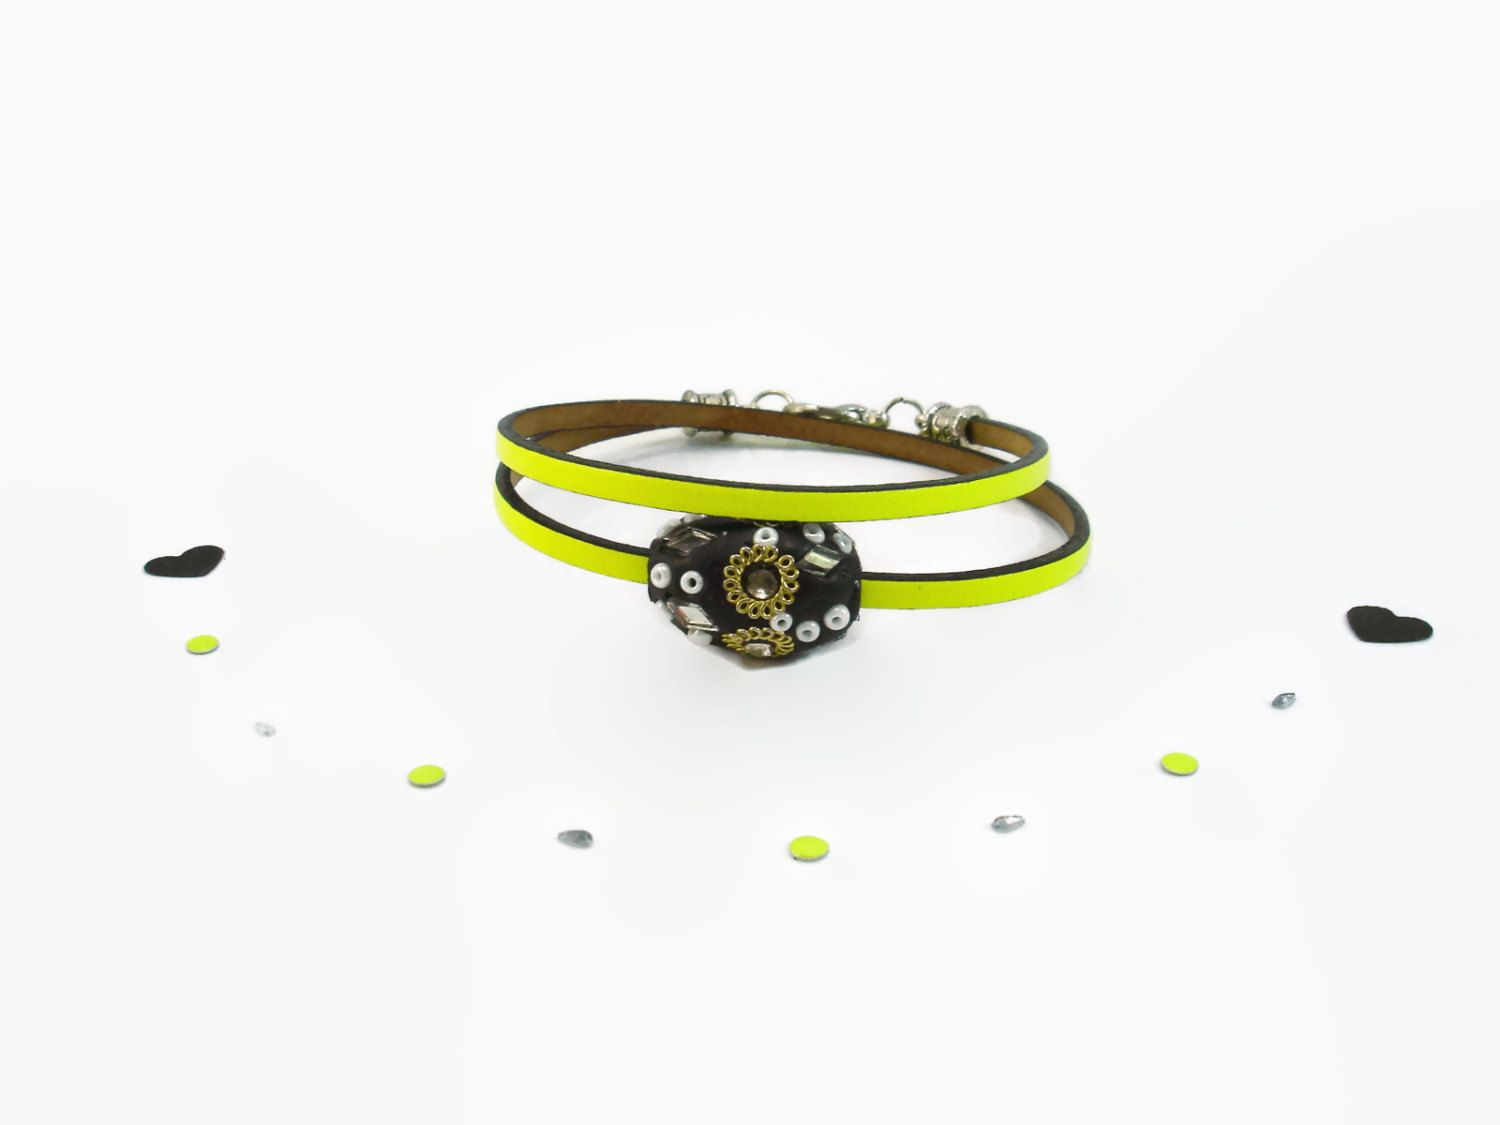 Double Wrap Leather Bracelet in Neon Yellow, Indian Style  Wrap Bracelet, Kashmir Charm Bracelet in Acid Yellow and Black, New Summer 2015 by ScrapCati on Etsy